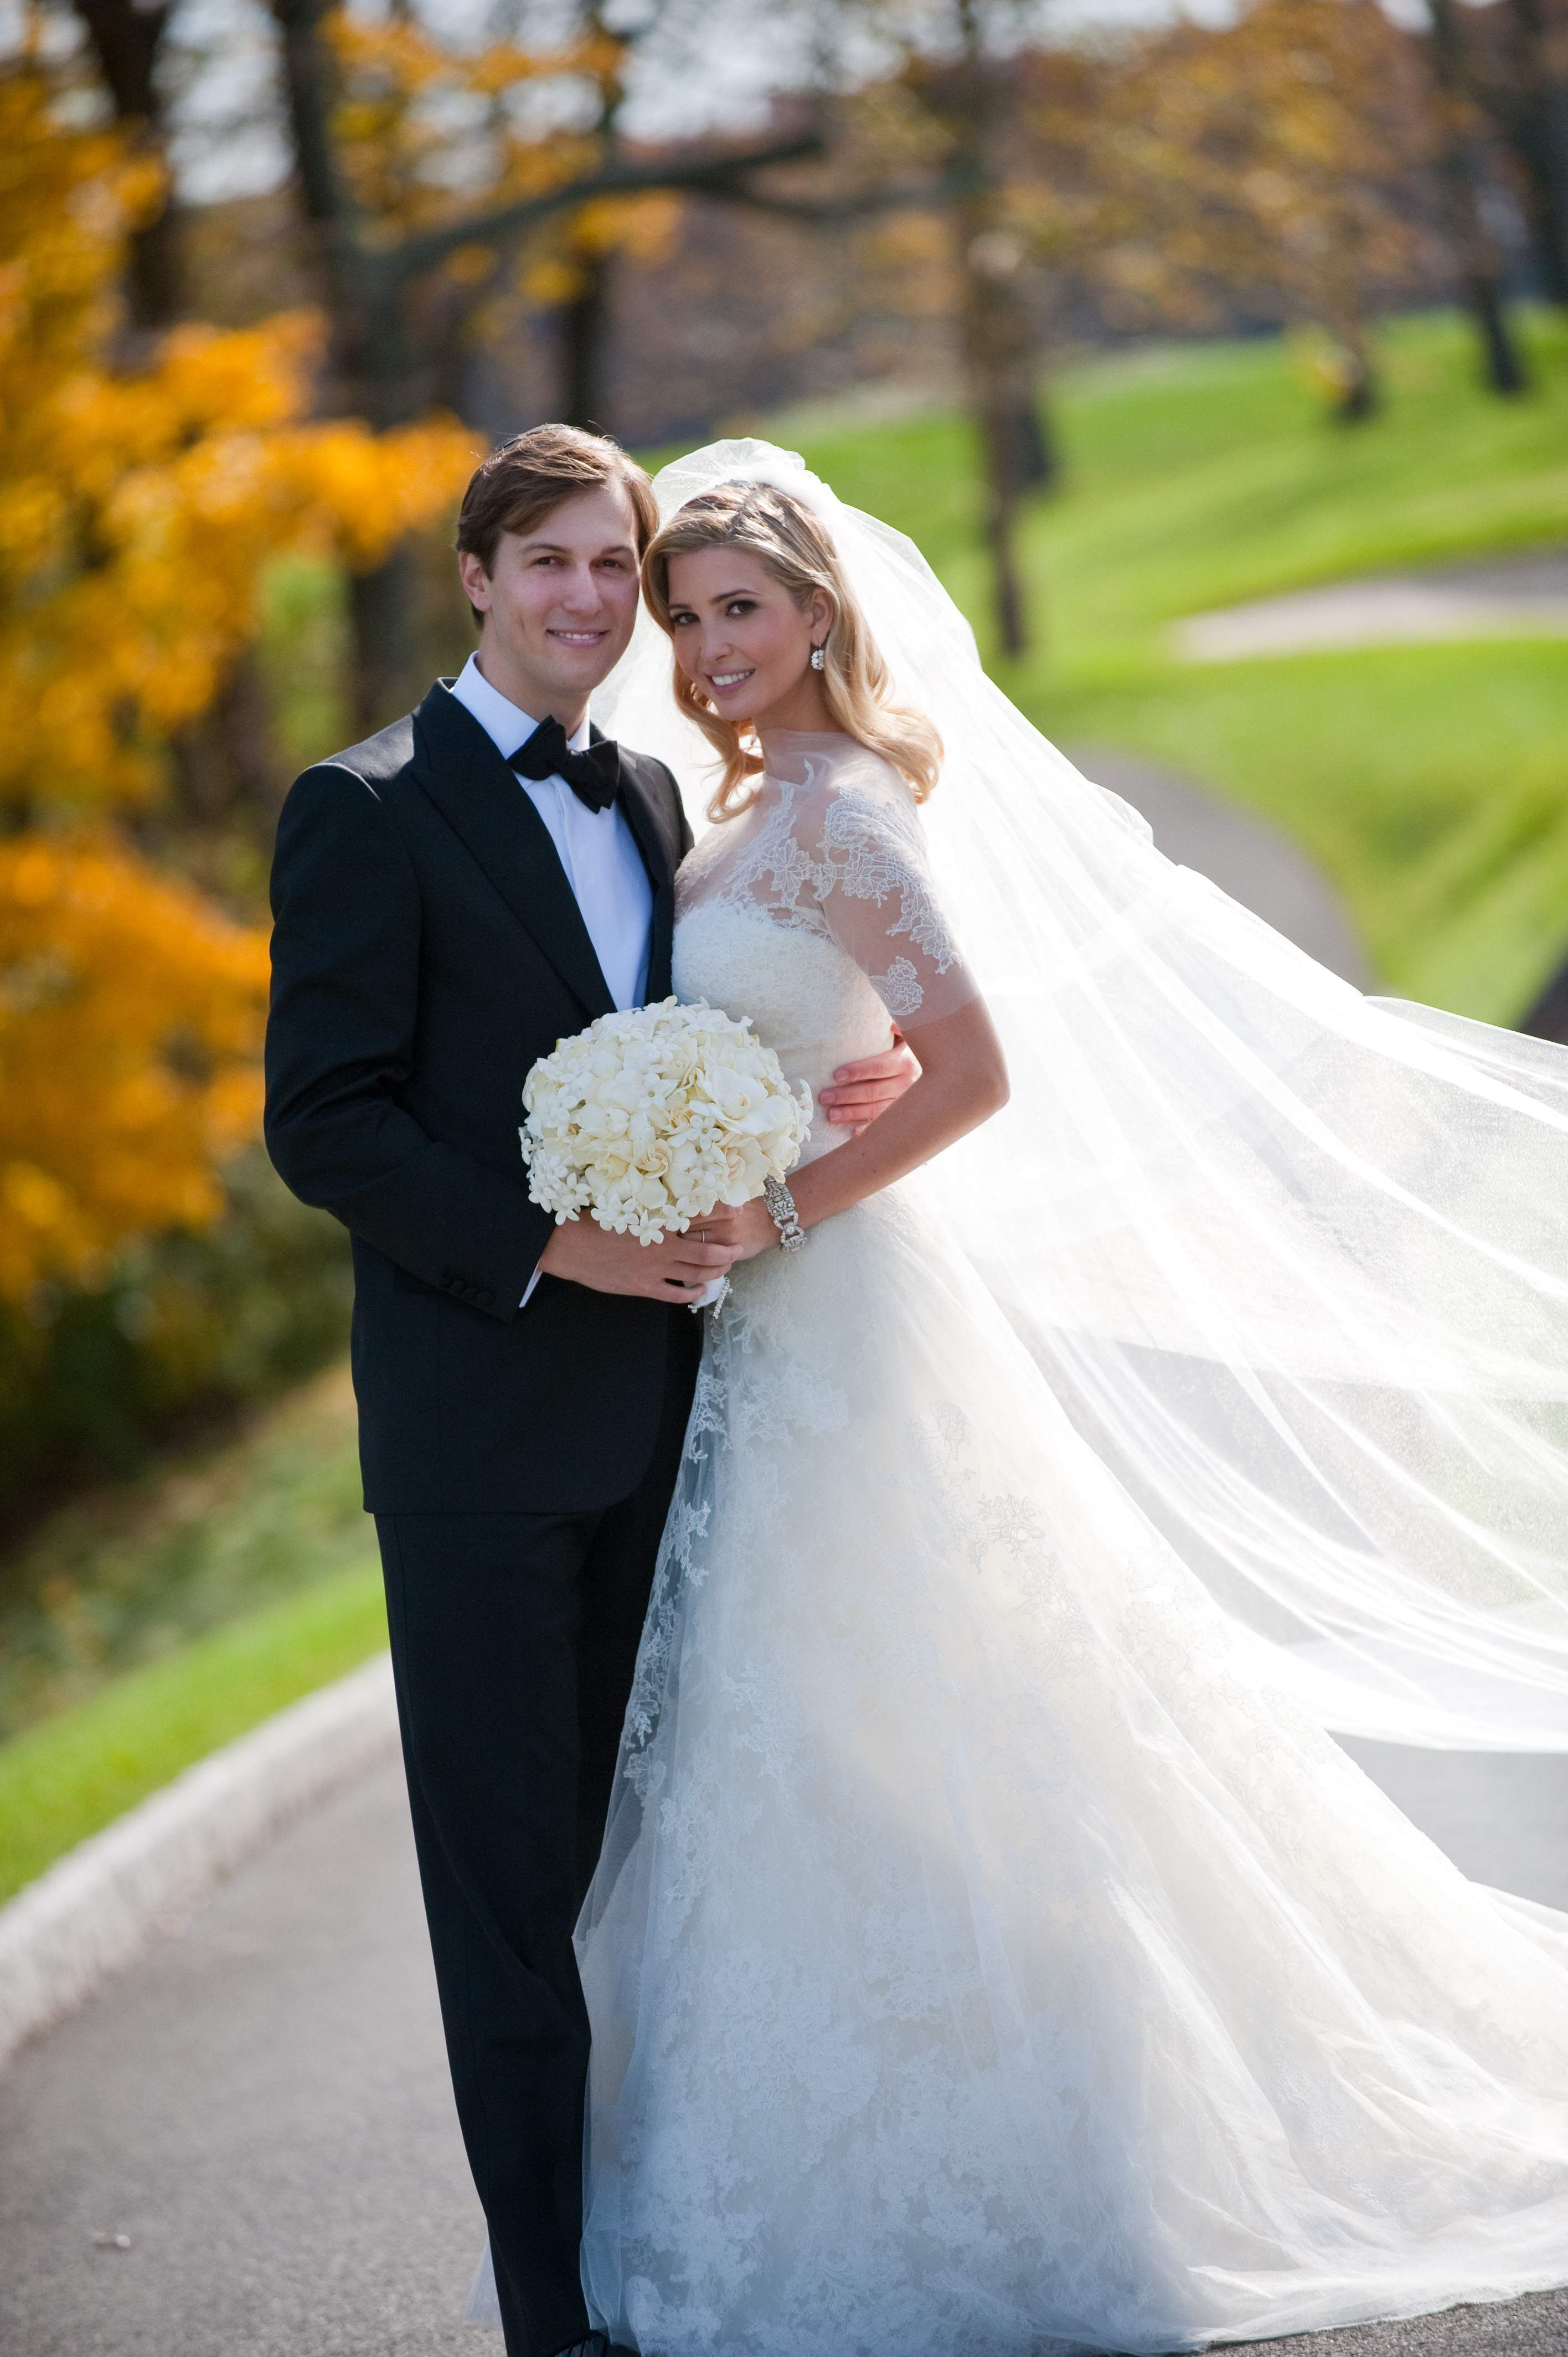 Jared kushner and ivanka trump celeb couples who stay together ivanka trump the most iconic wedding dresses of all time southernliving wed jared kushner in october 2009 vera wang designed the future first ombrellifo Image collections